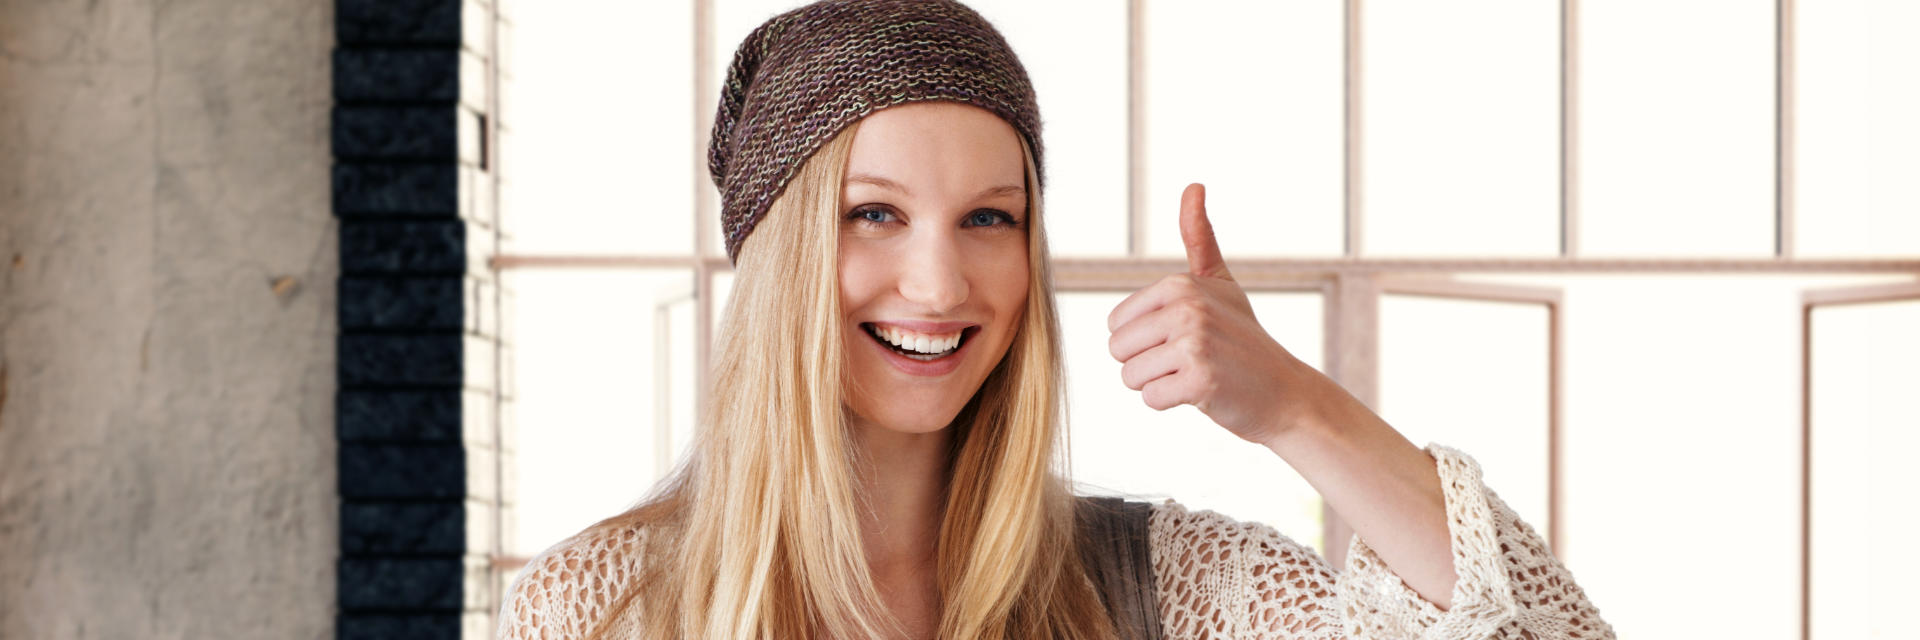 Young blonde woman with perfect smile showing her thumb up.